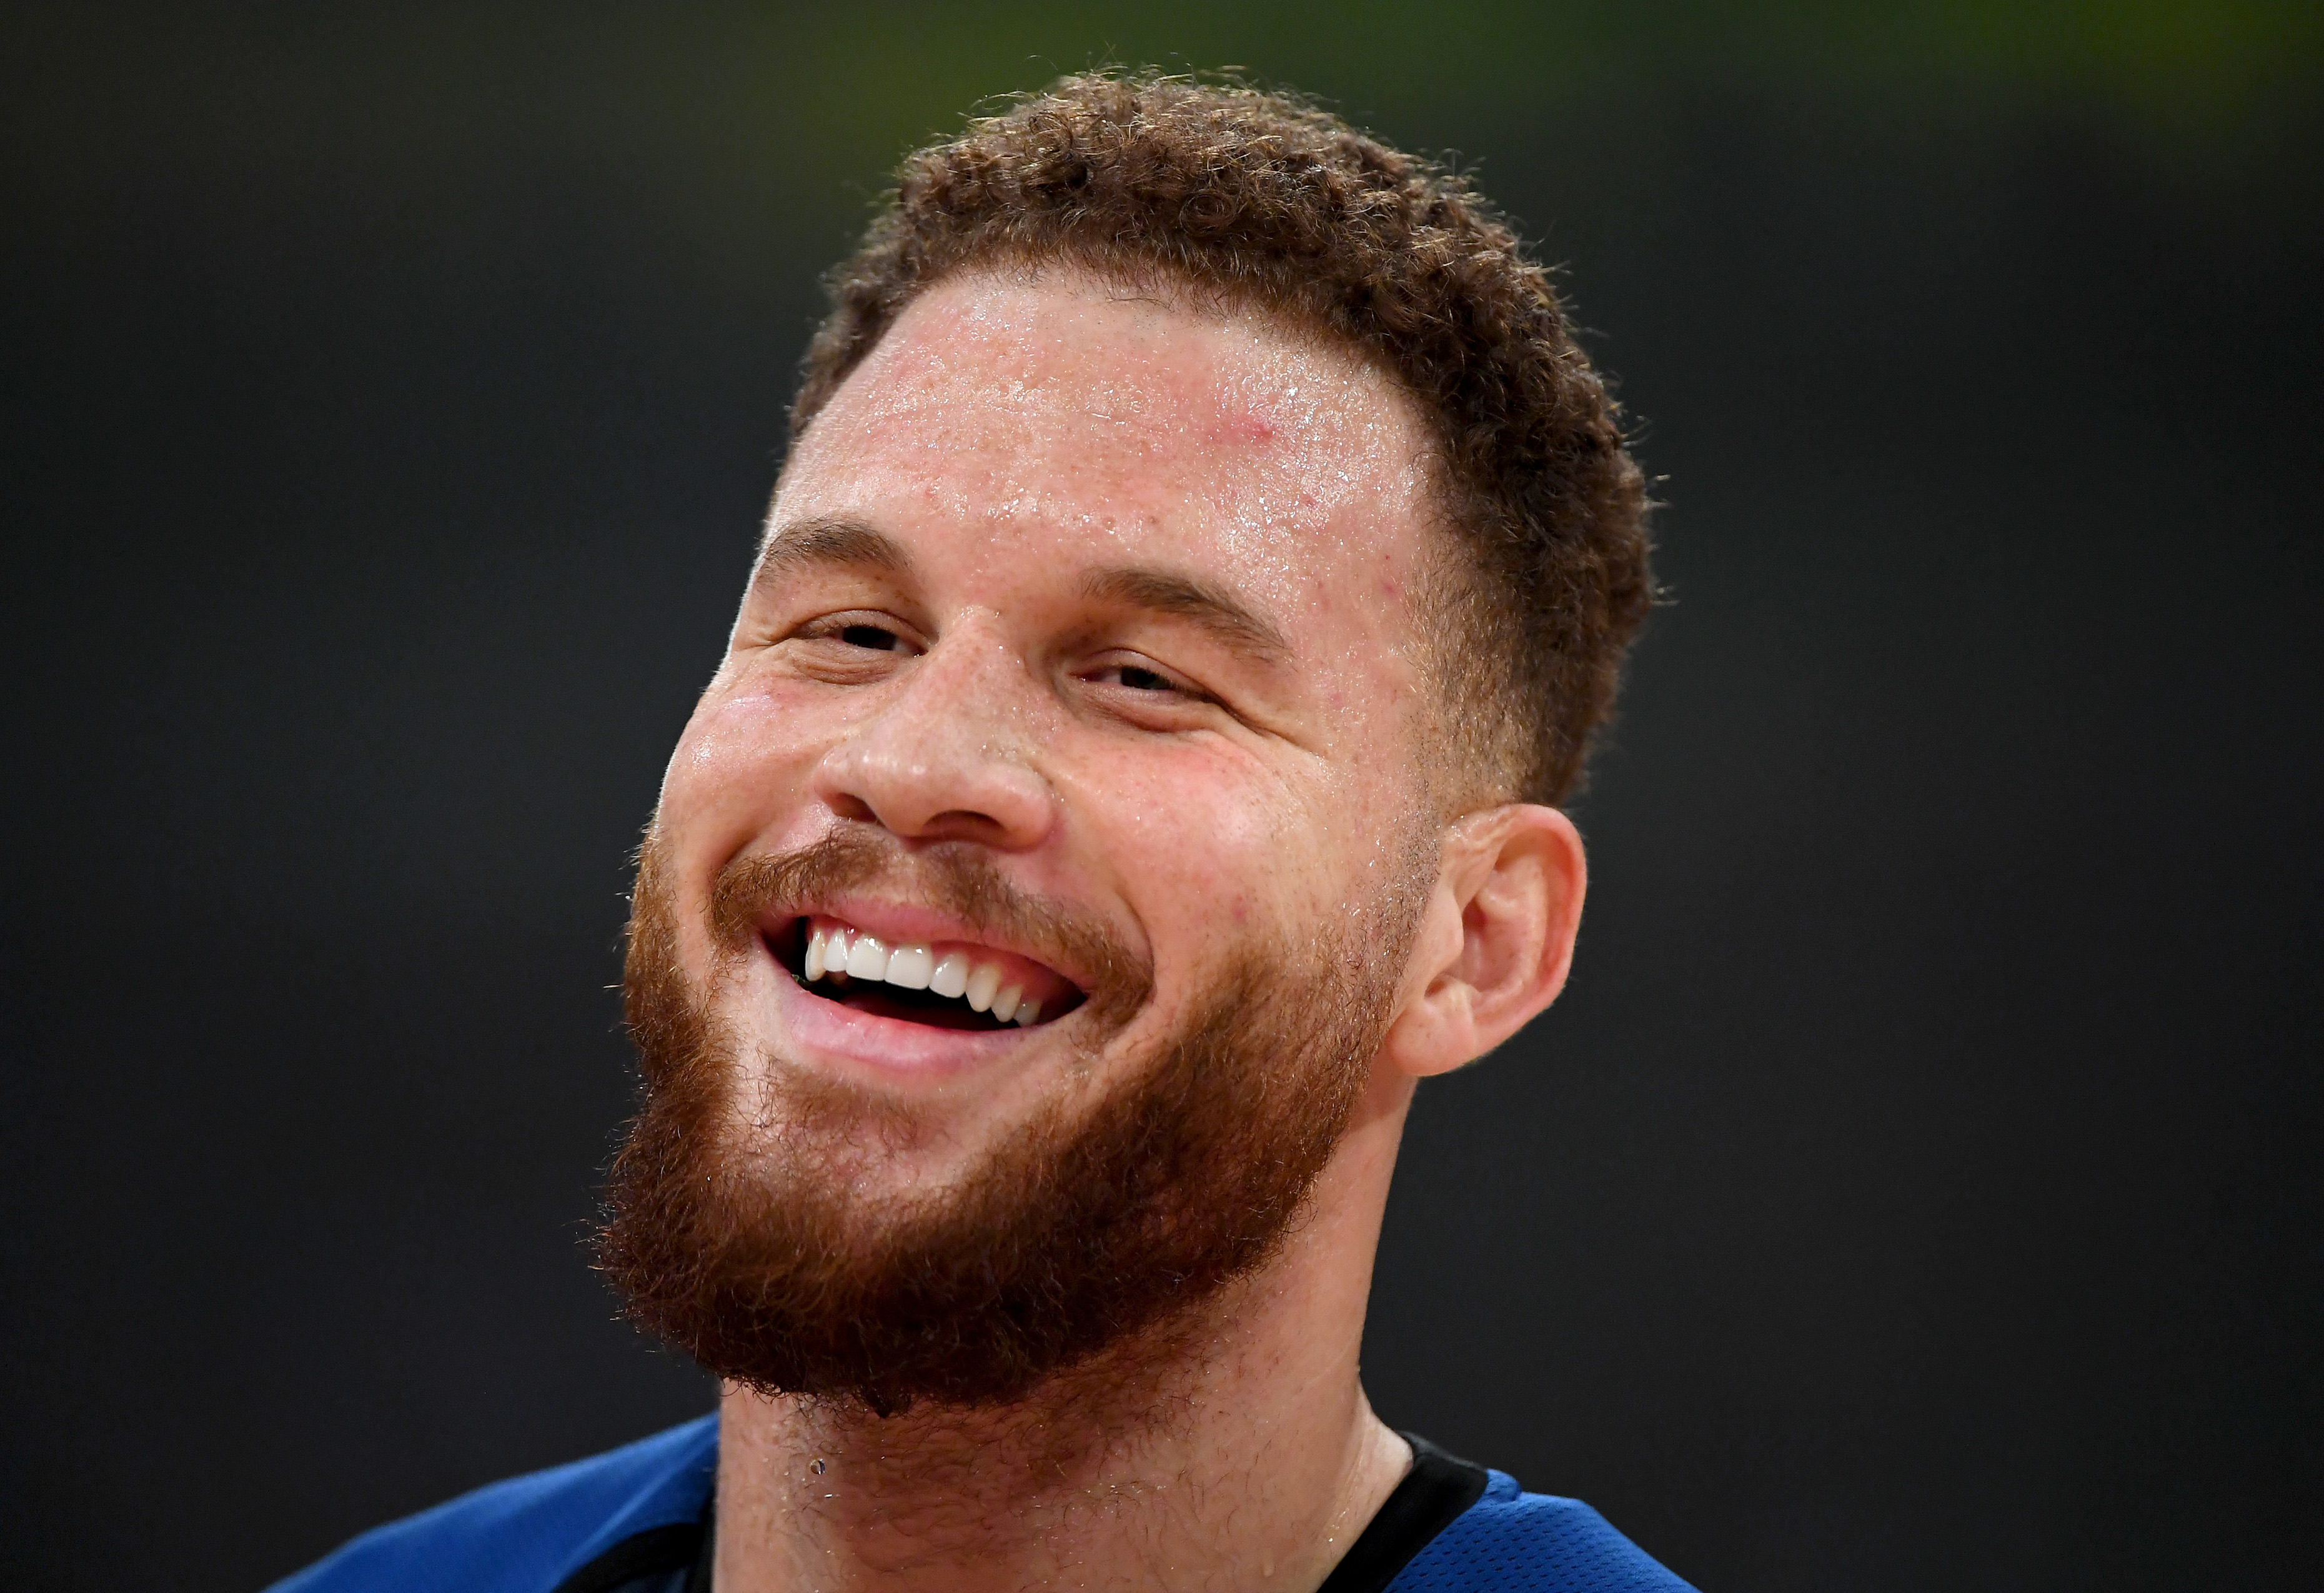 Blake Griffin Appears To Forget Which Team He's On After Old Teammate Dunks On New Teammates